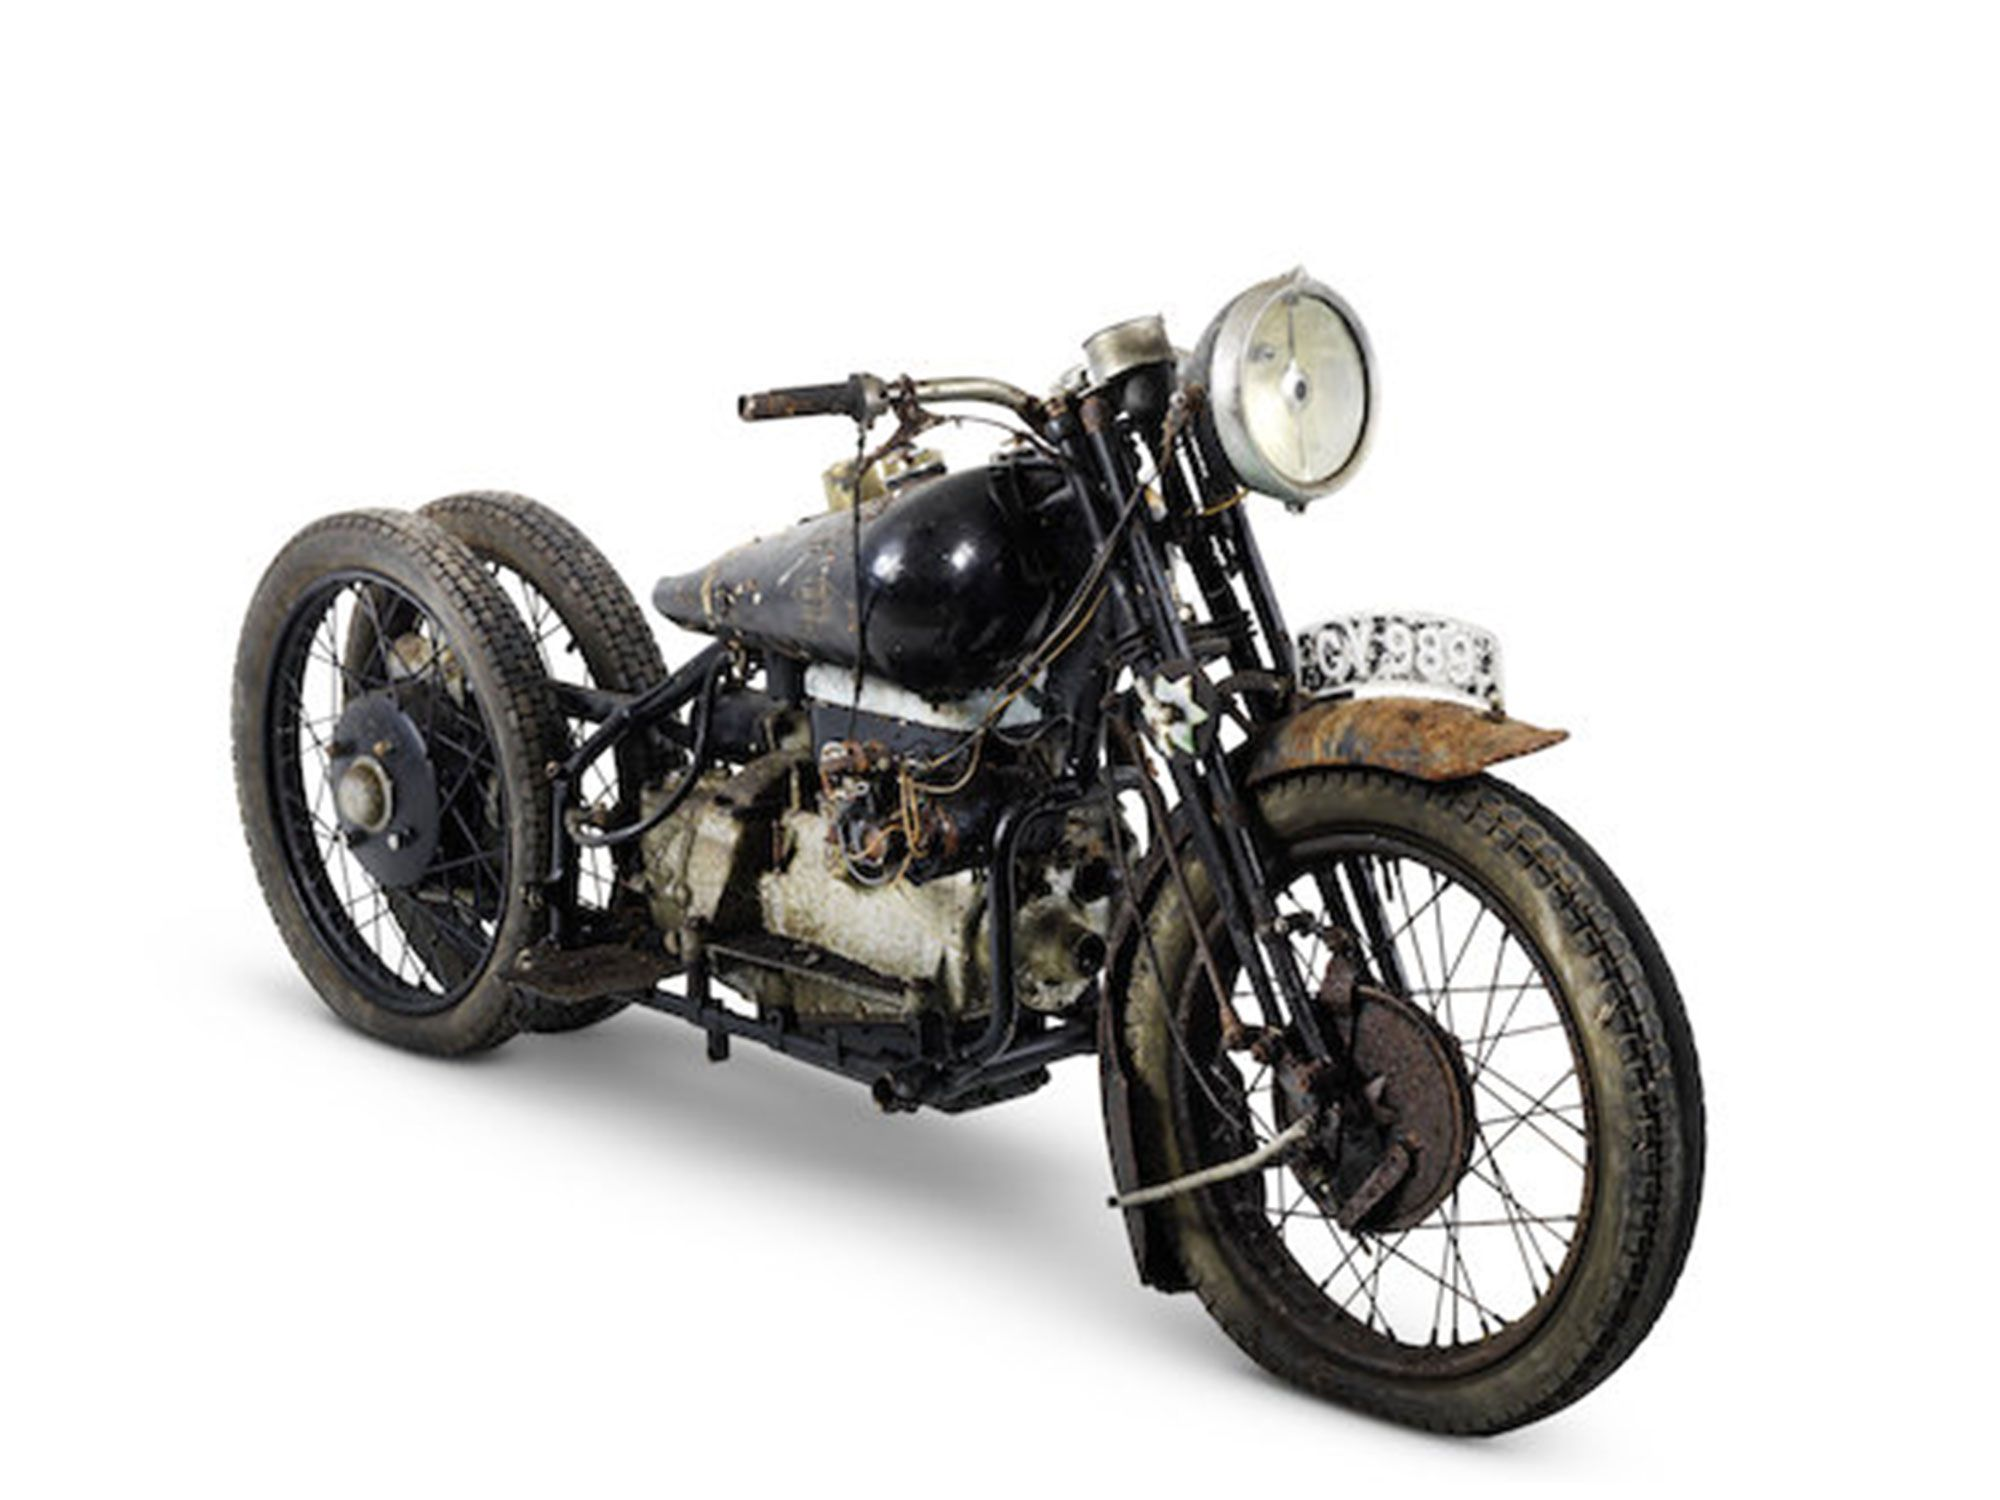 11. Back to Broughs? Yep, but this rough roller four-cylinder is one of only 10 made. Yes, three wheels!